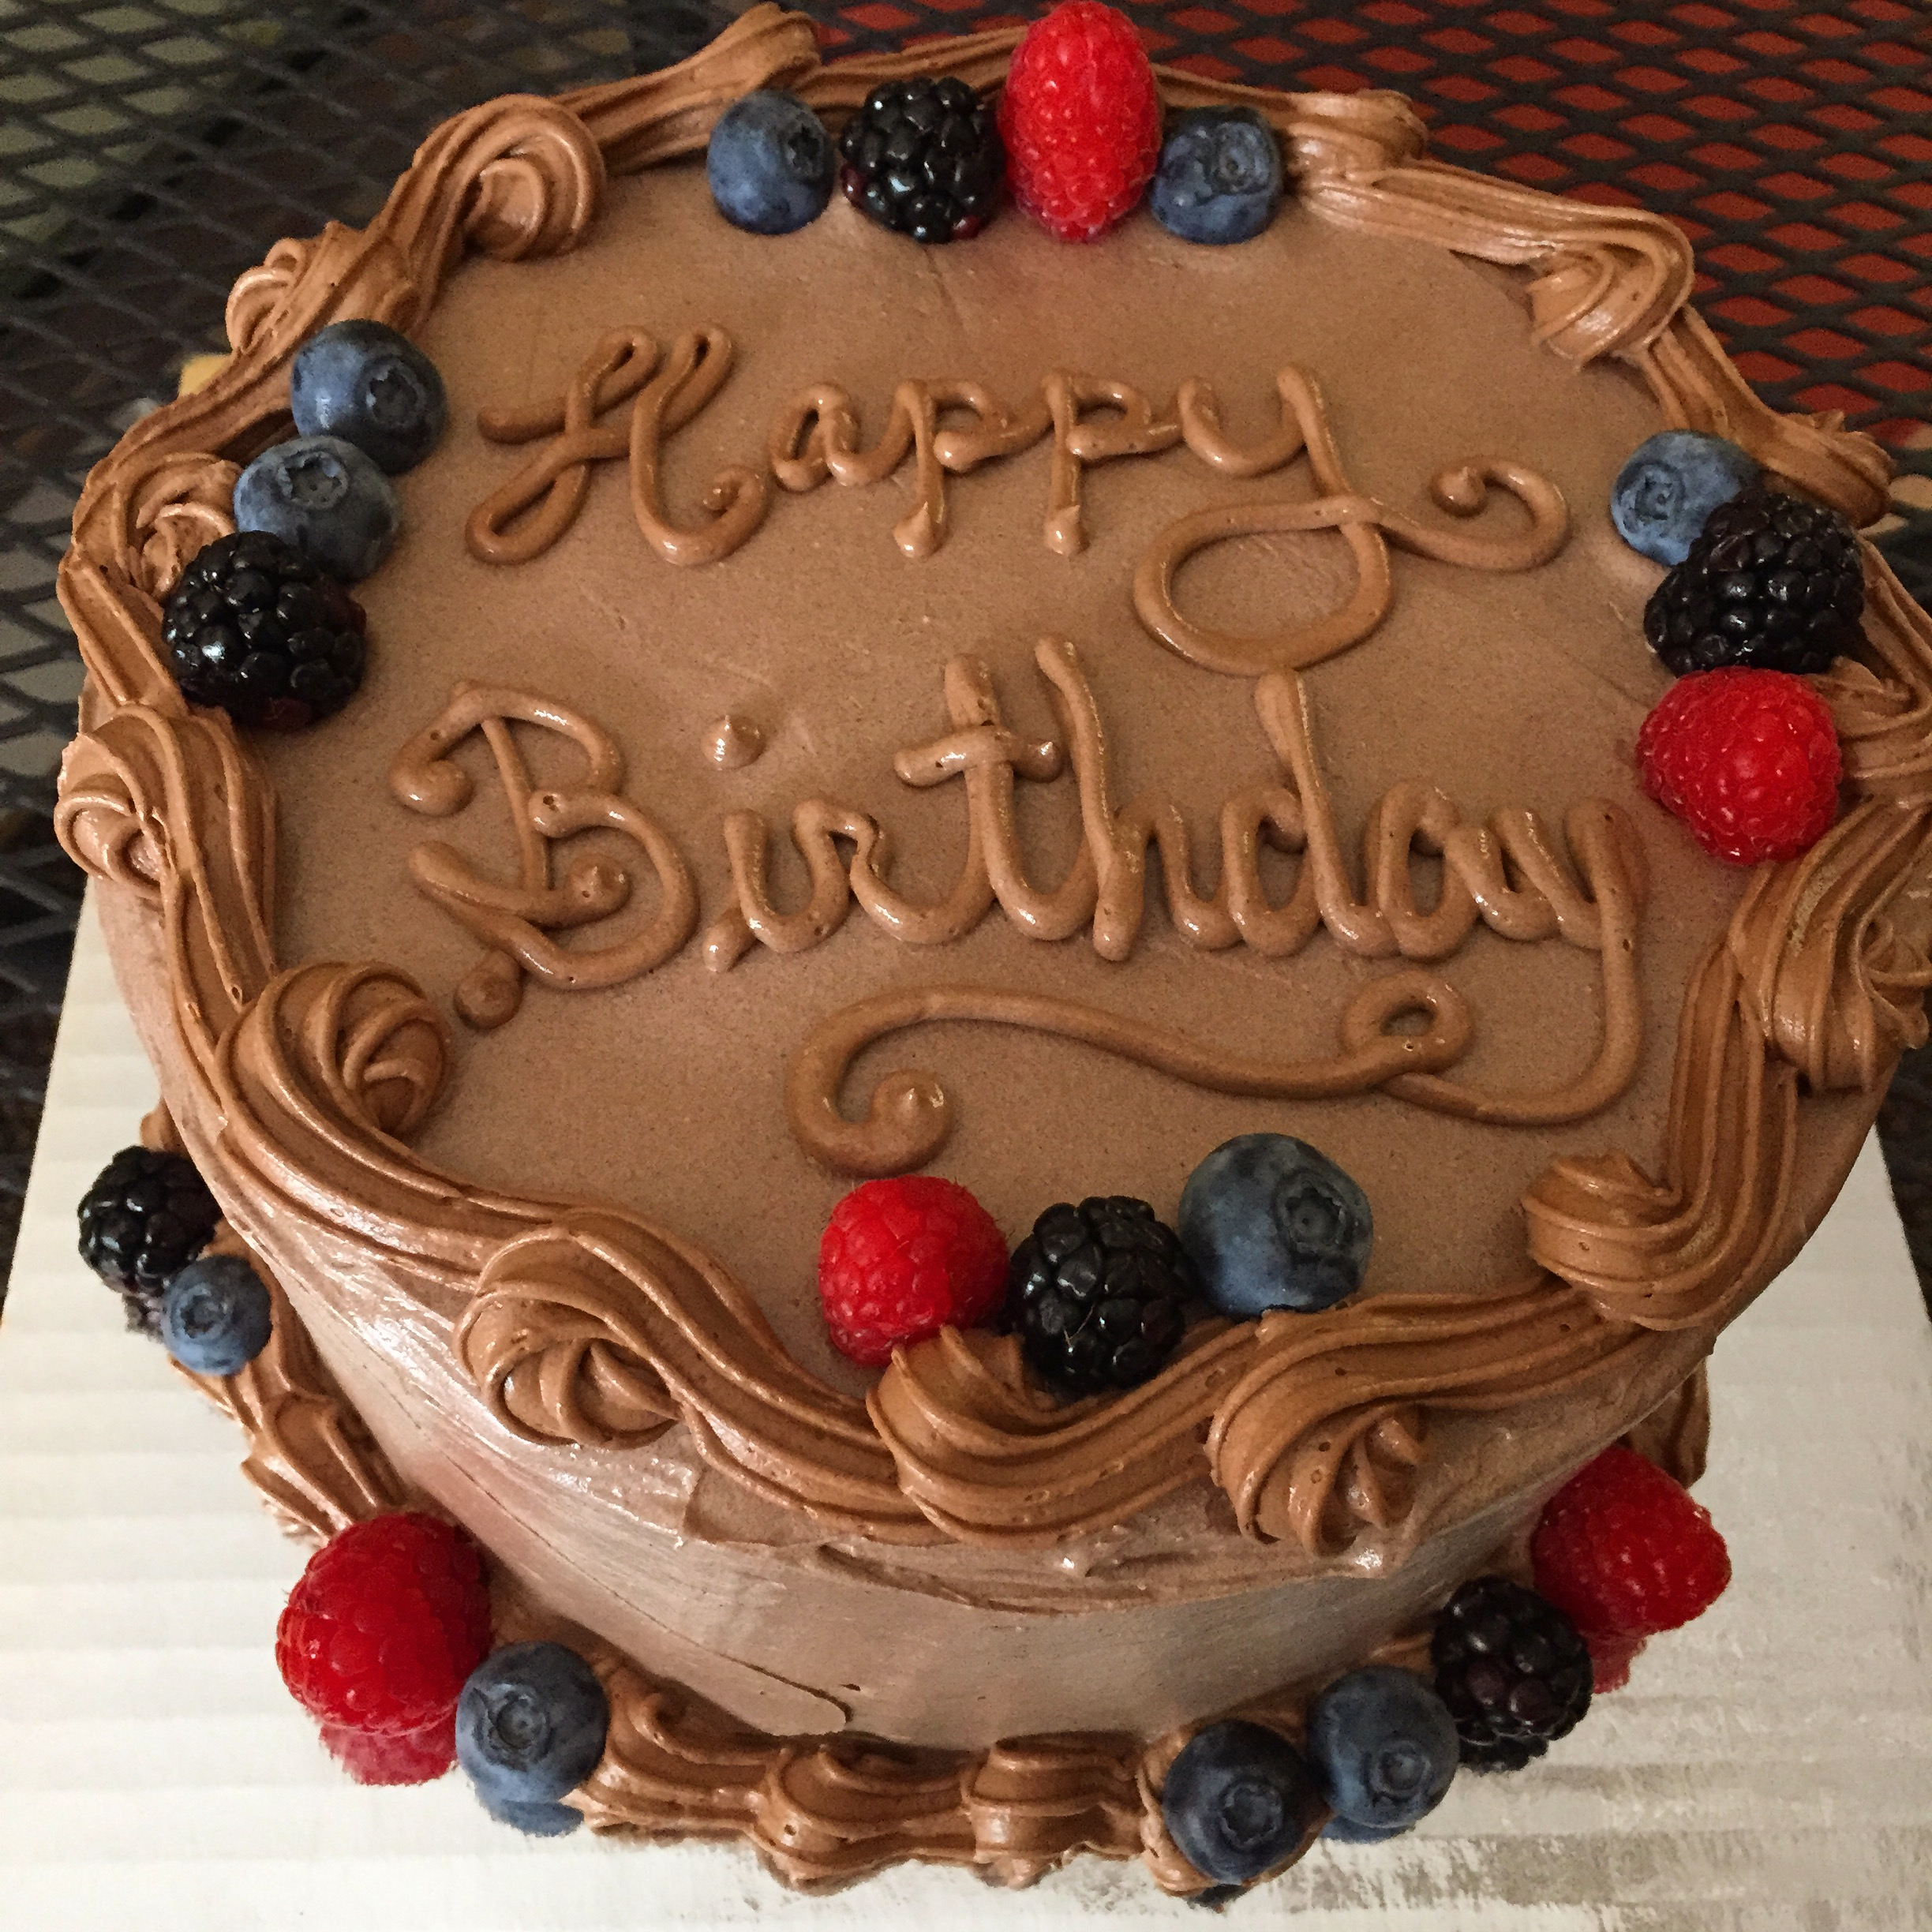 Birthday Cake with Berries